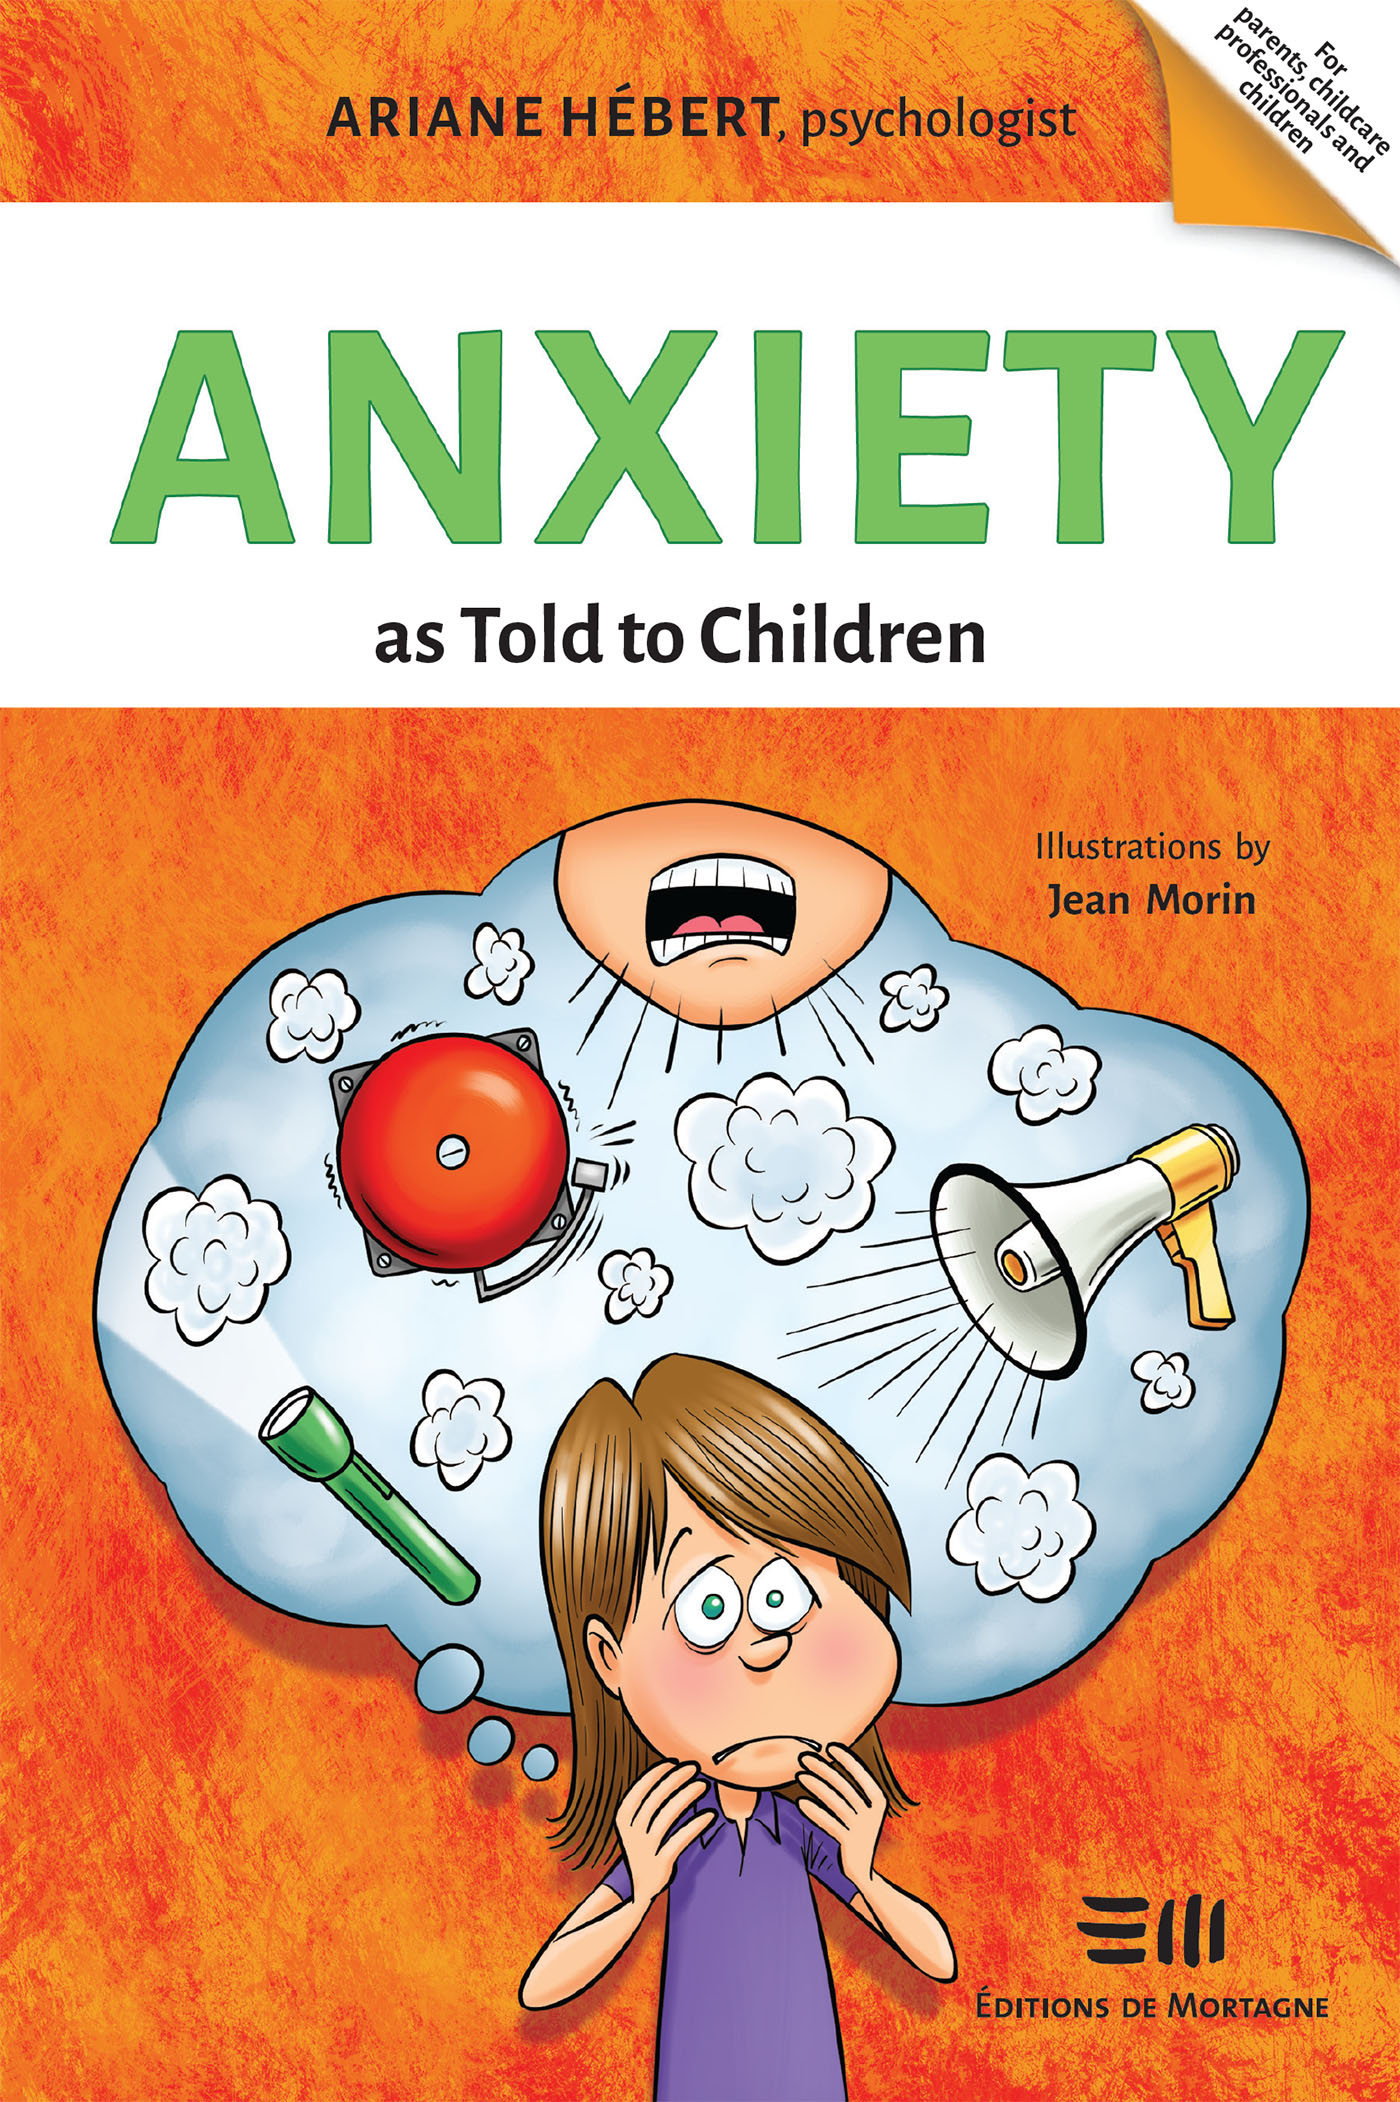 Vignette du livre Anxiety as Told to Children